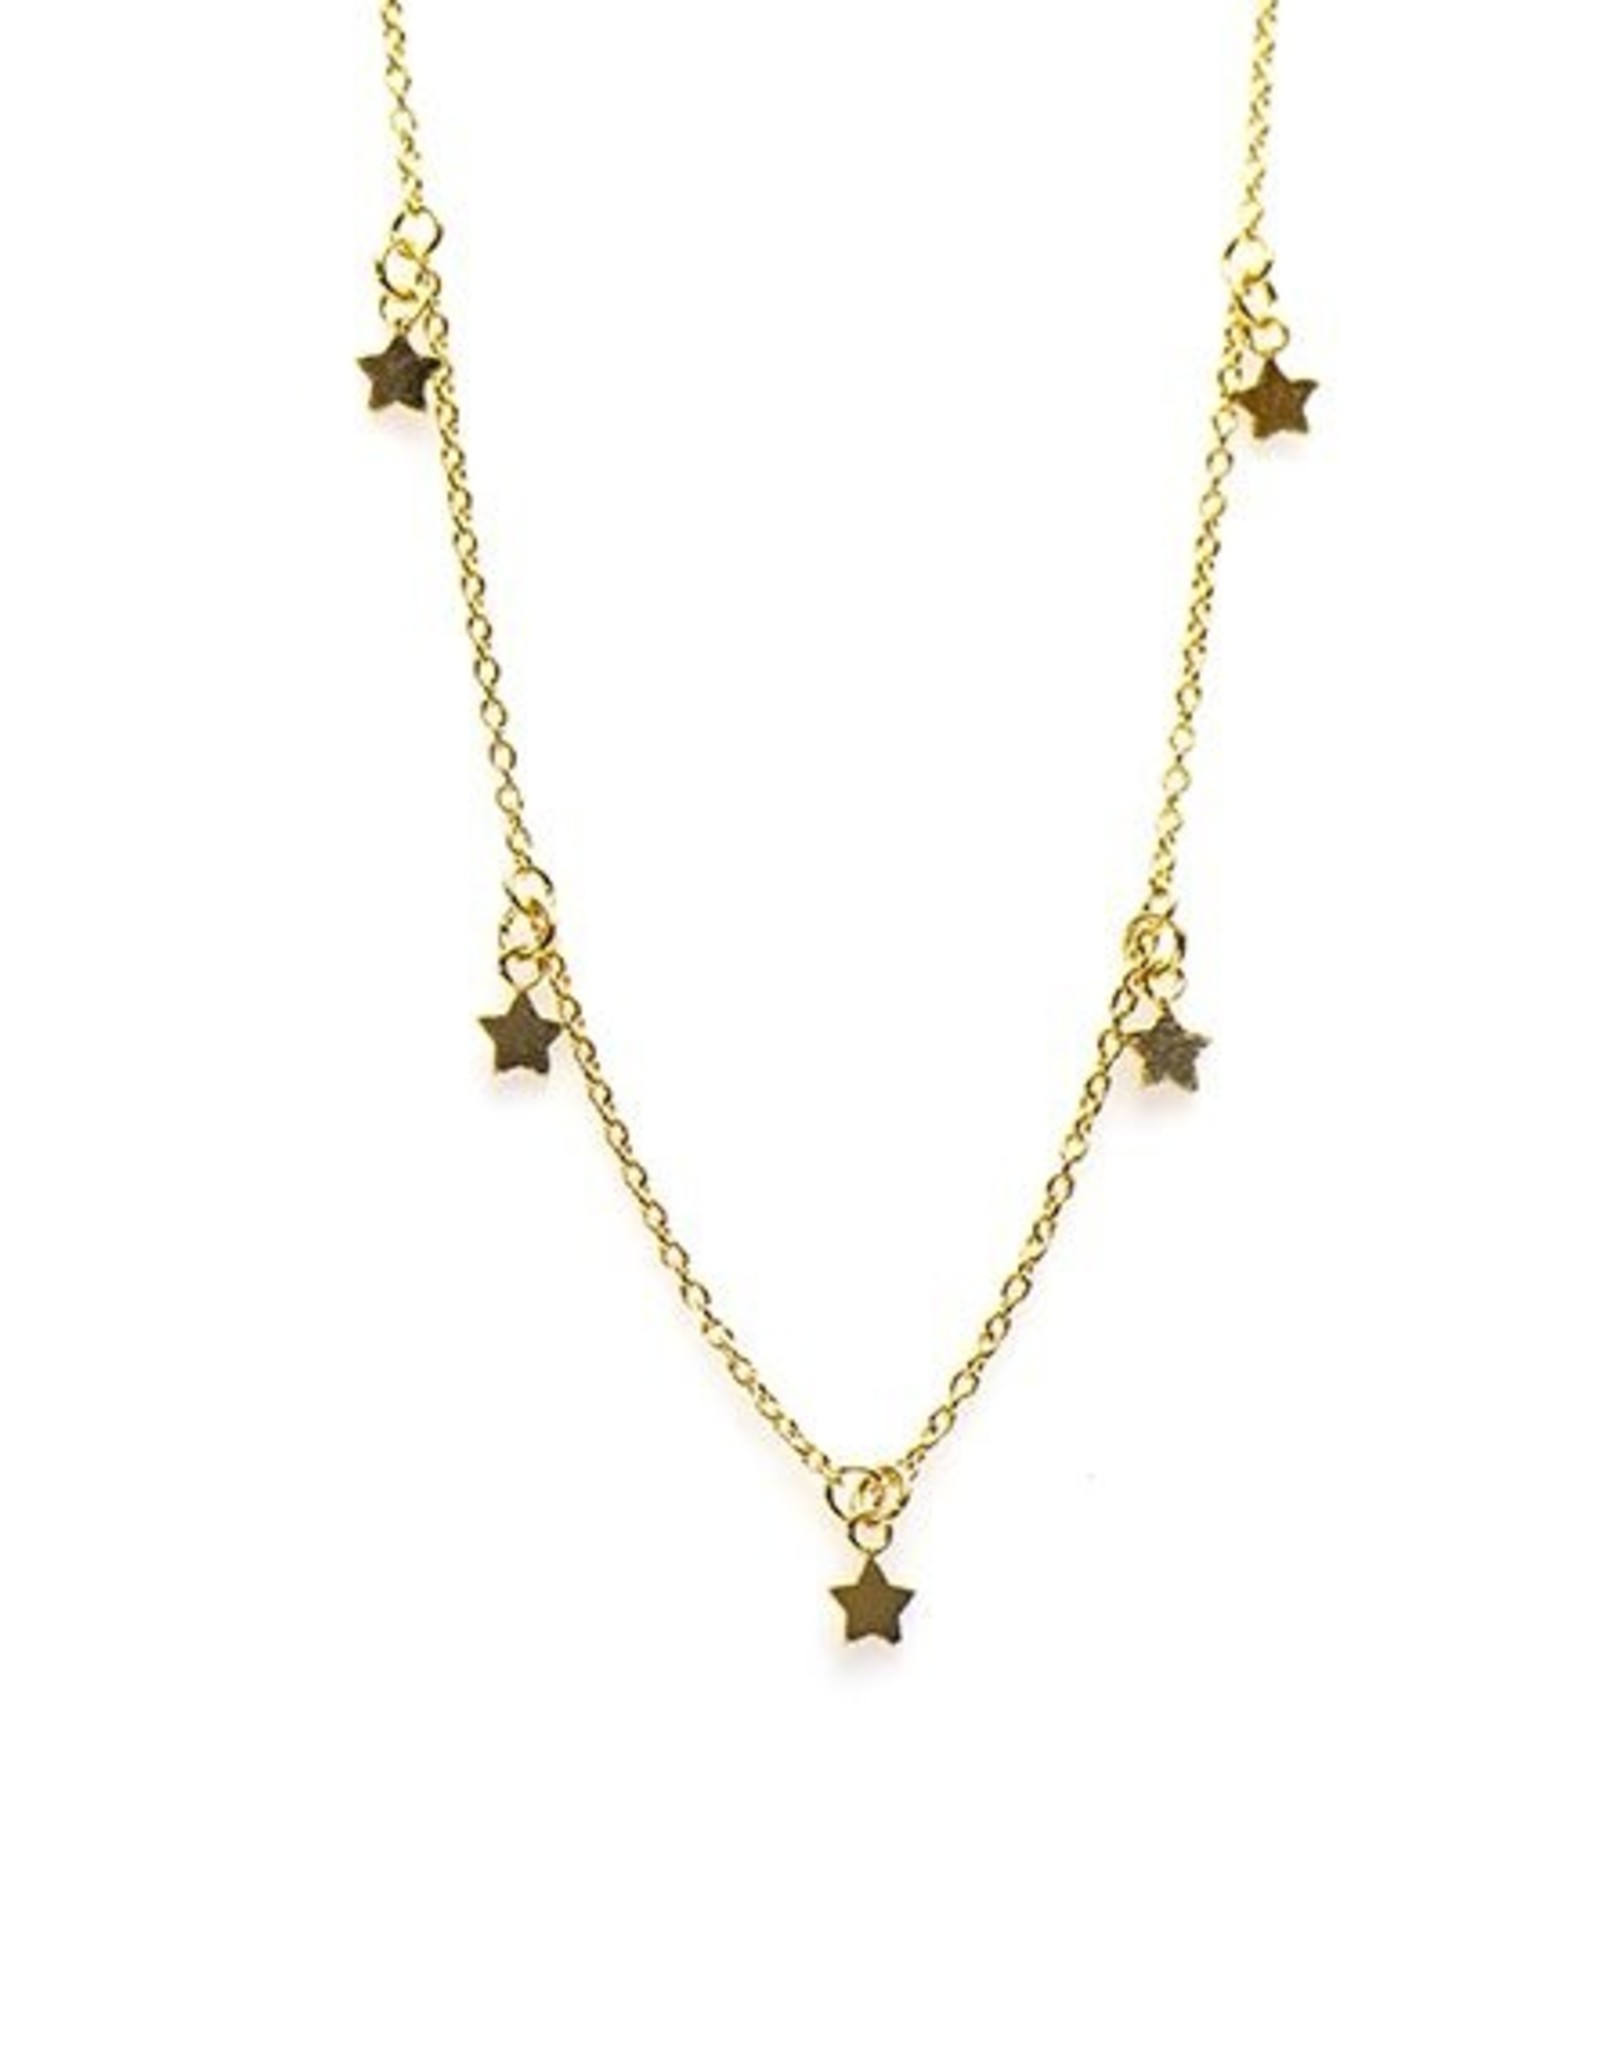 Karma Necklace 5 Stars Goldplated